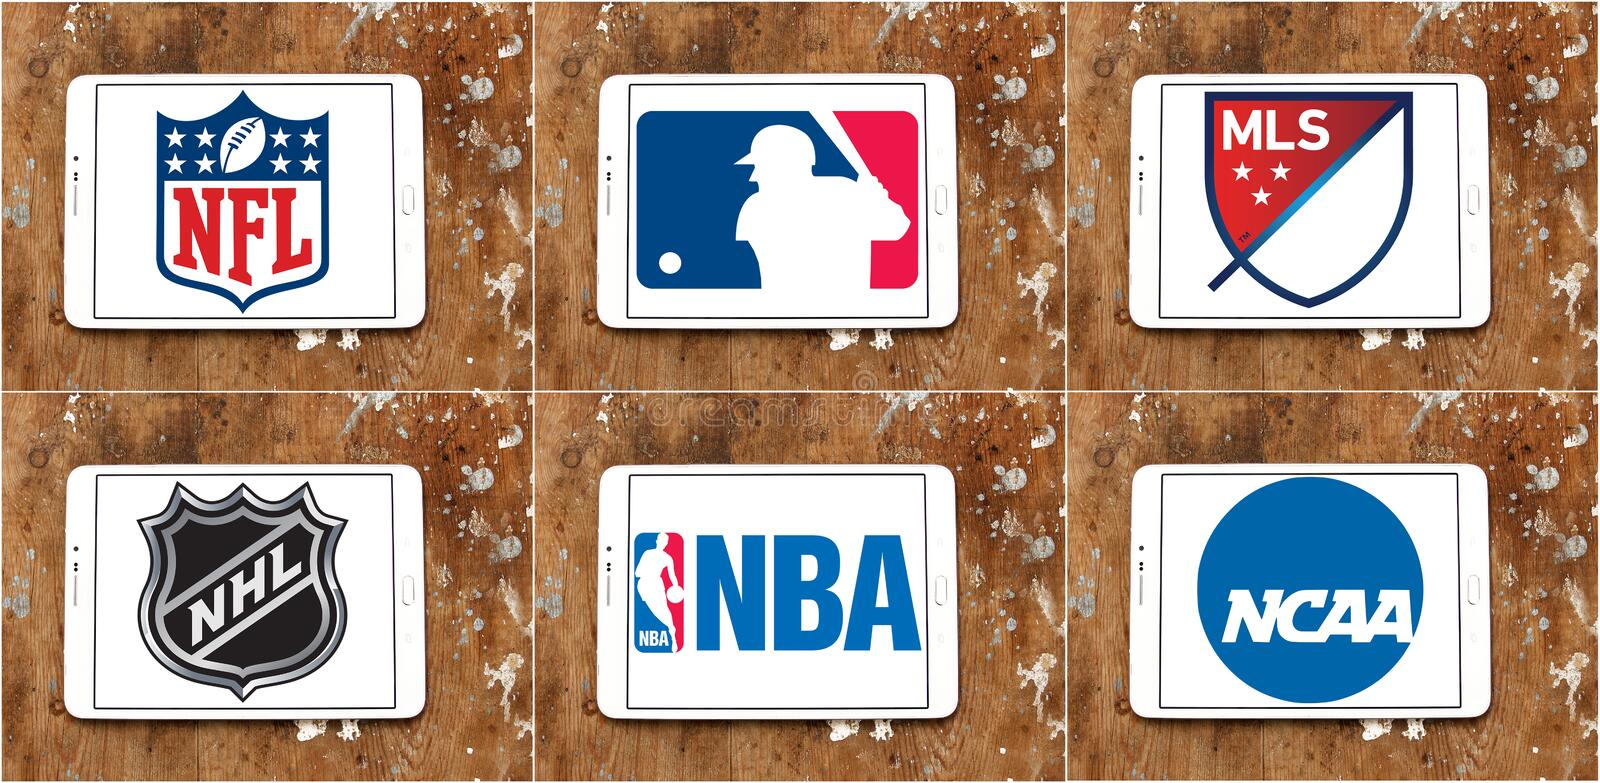 Usa sports logos and icons. Collection of logos and vector of most popular usa sports leagues on white tablet on rusty wooden background. leagues like nfl, mls